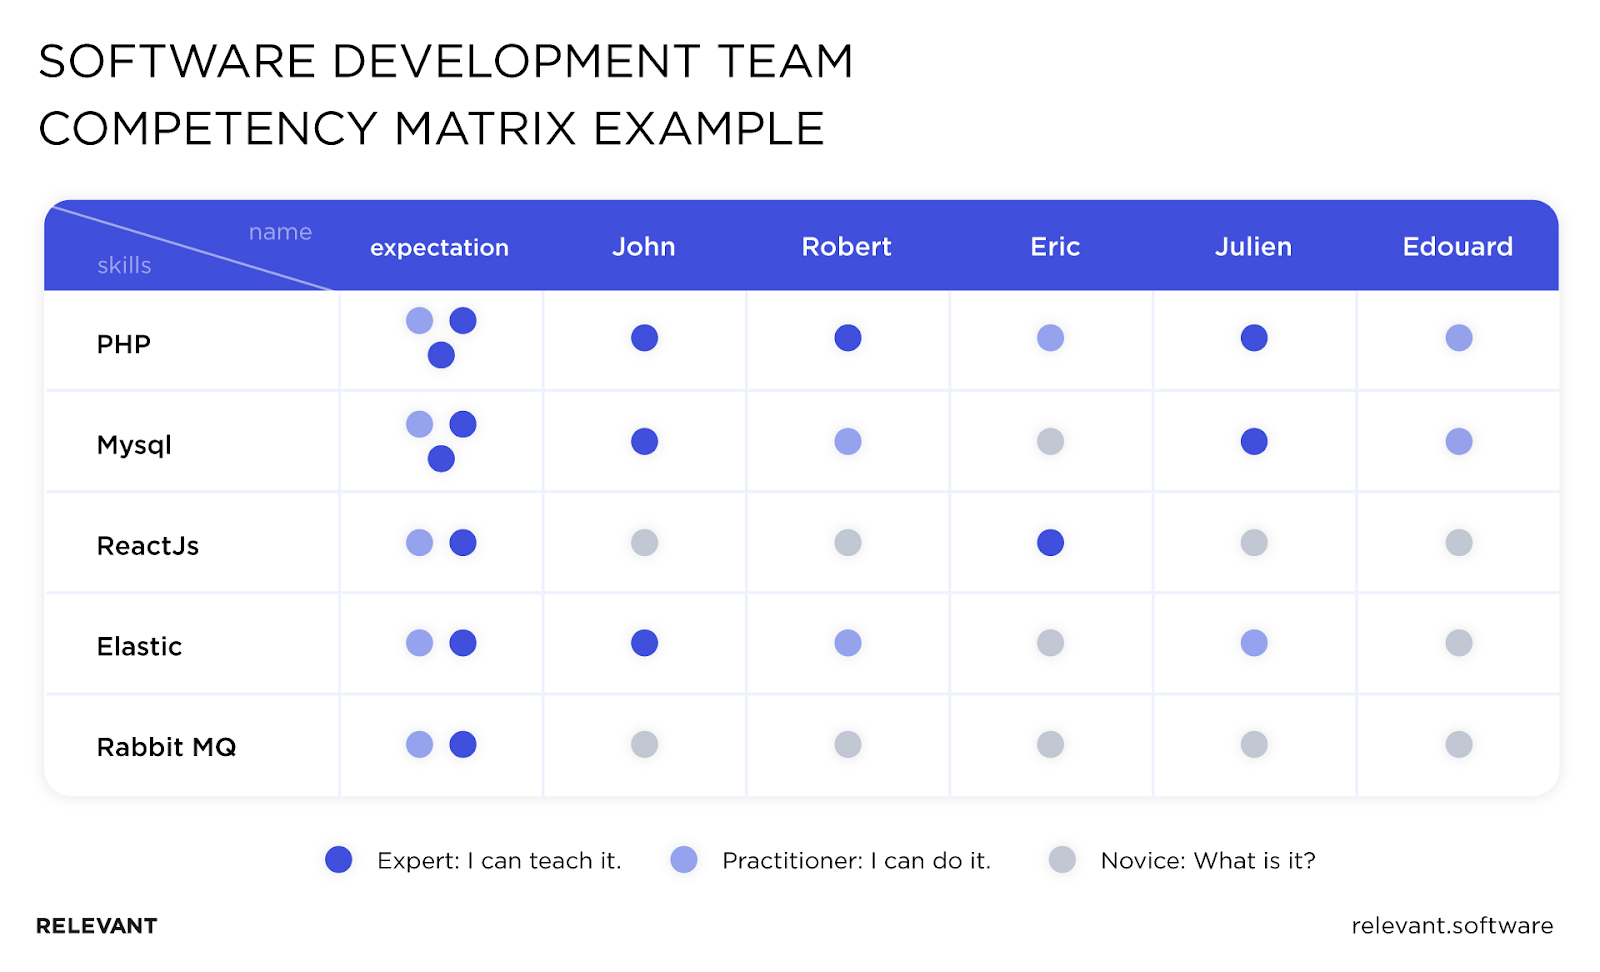 Software development team competency matrix example